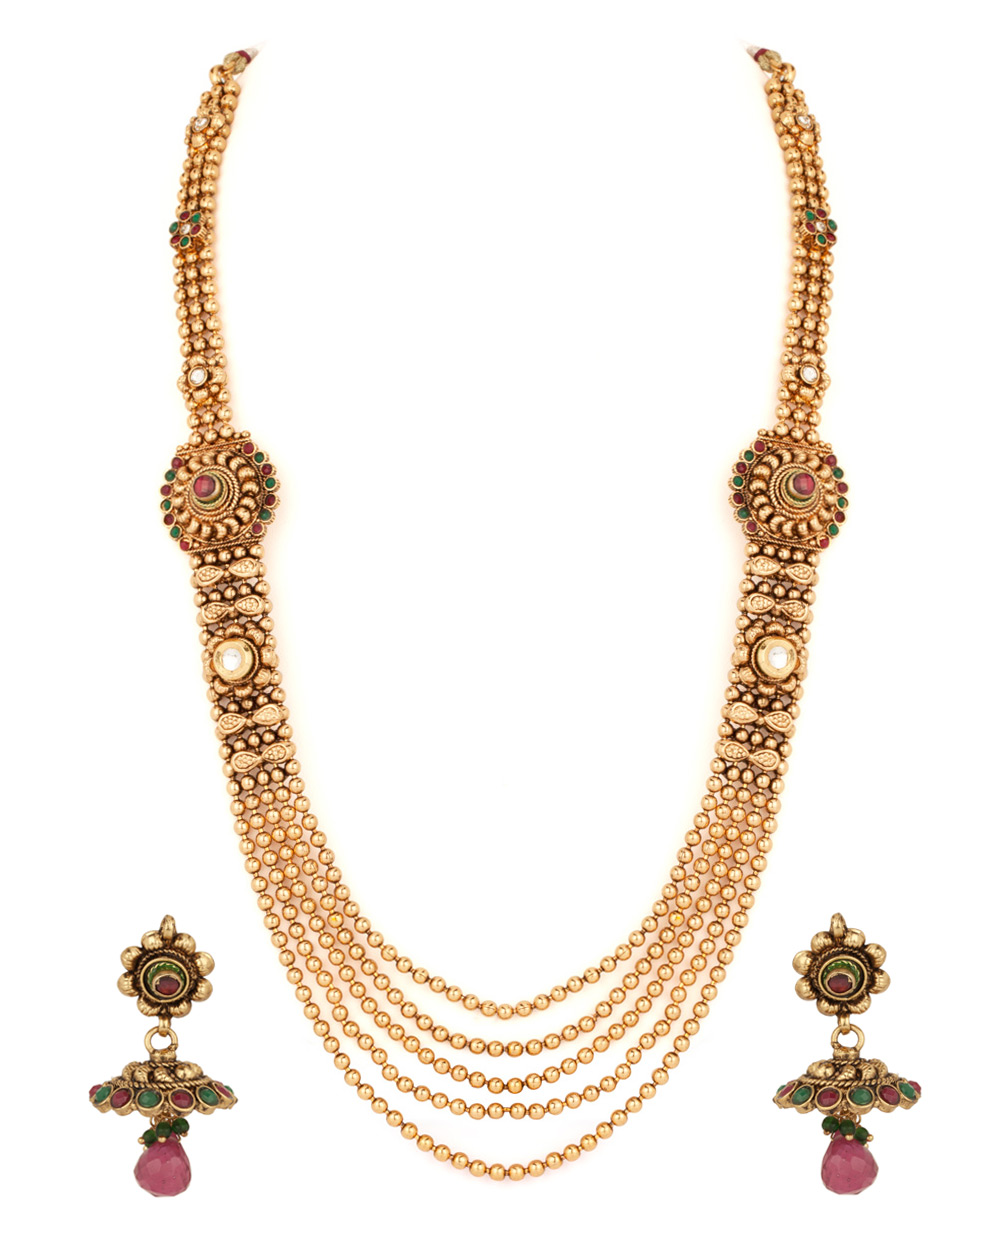 Buy Classy Gold Plated Long Chain Necklace Set Online India | Voylla